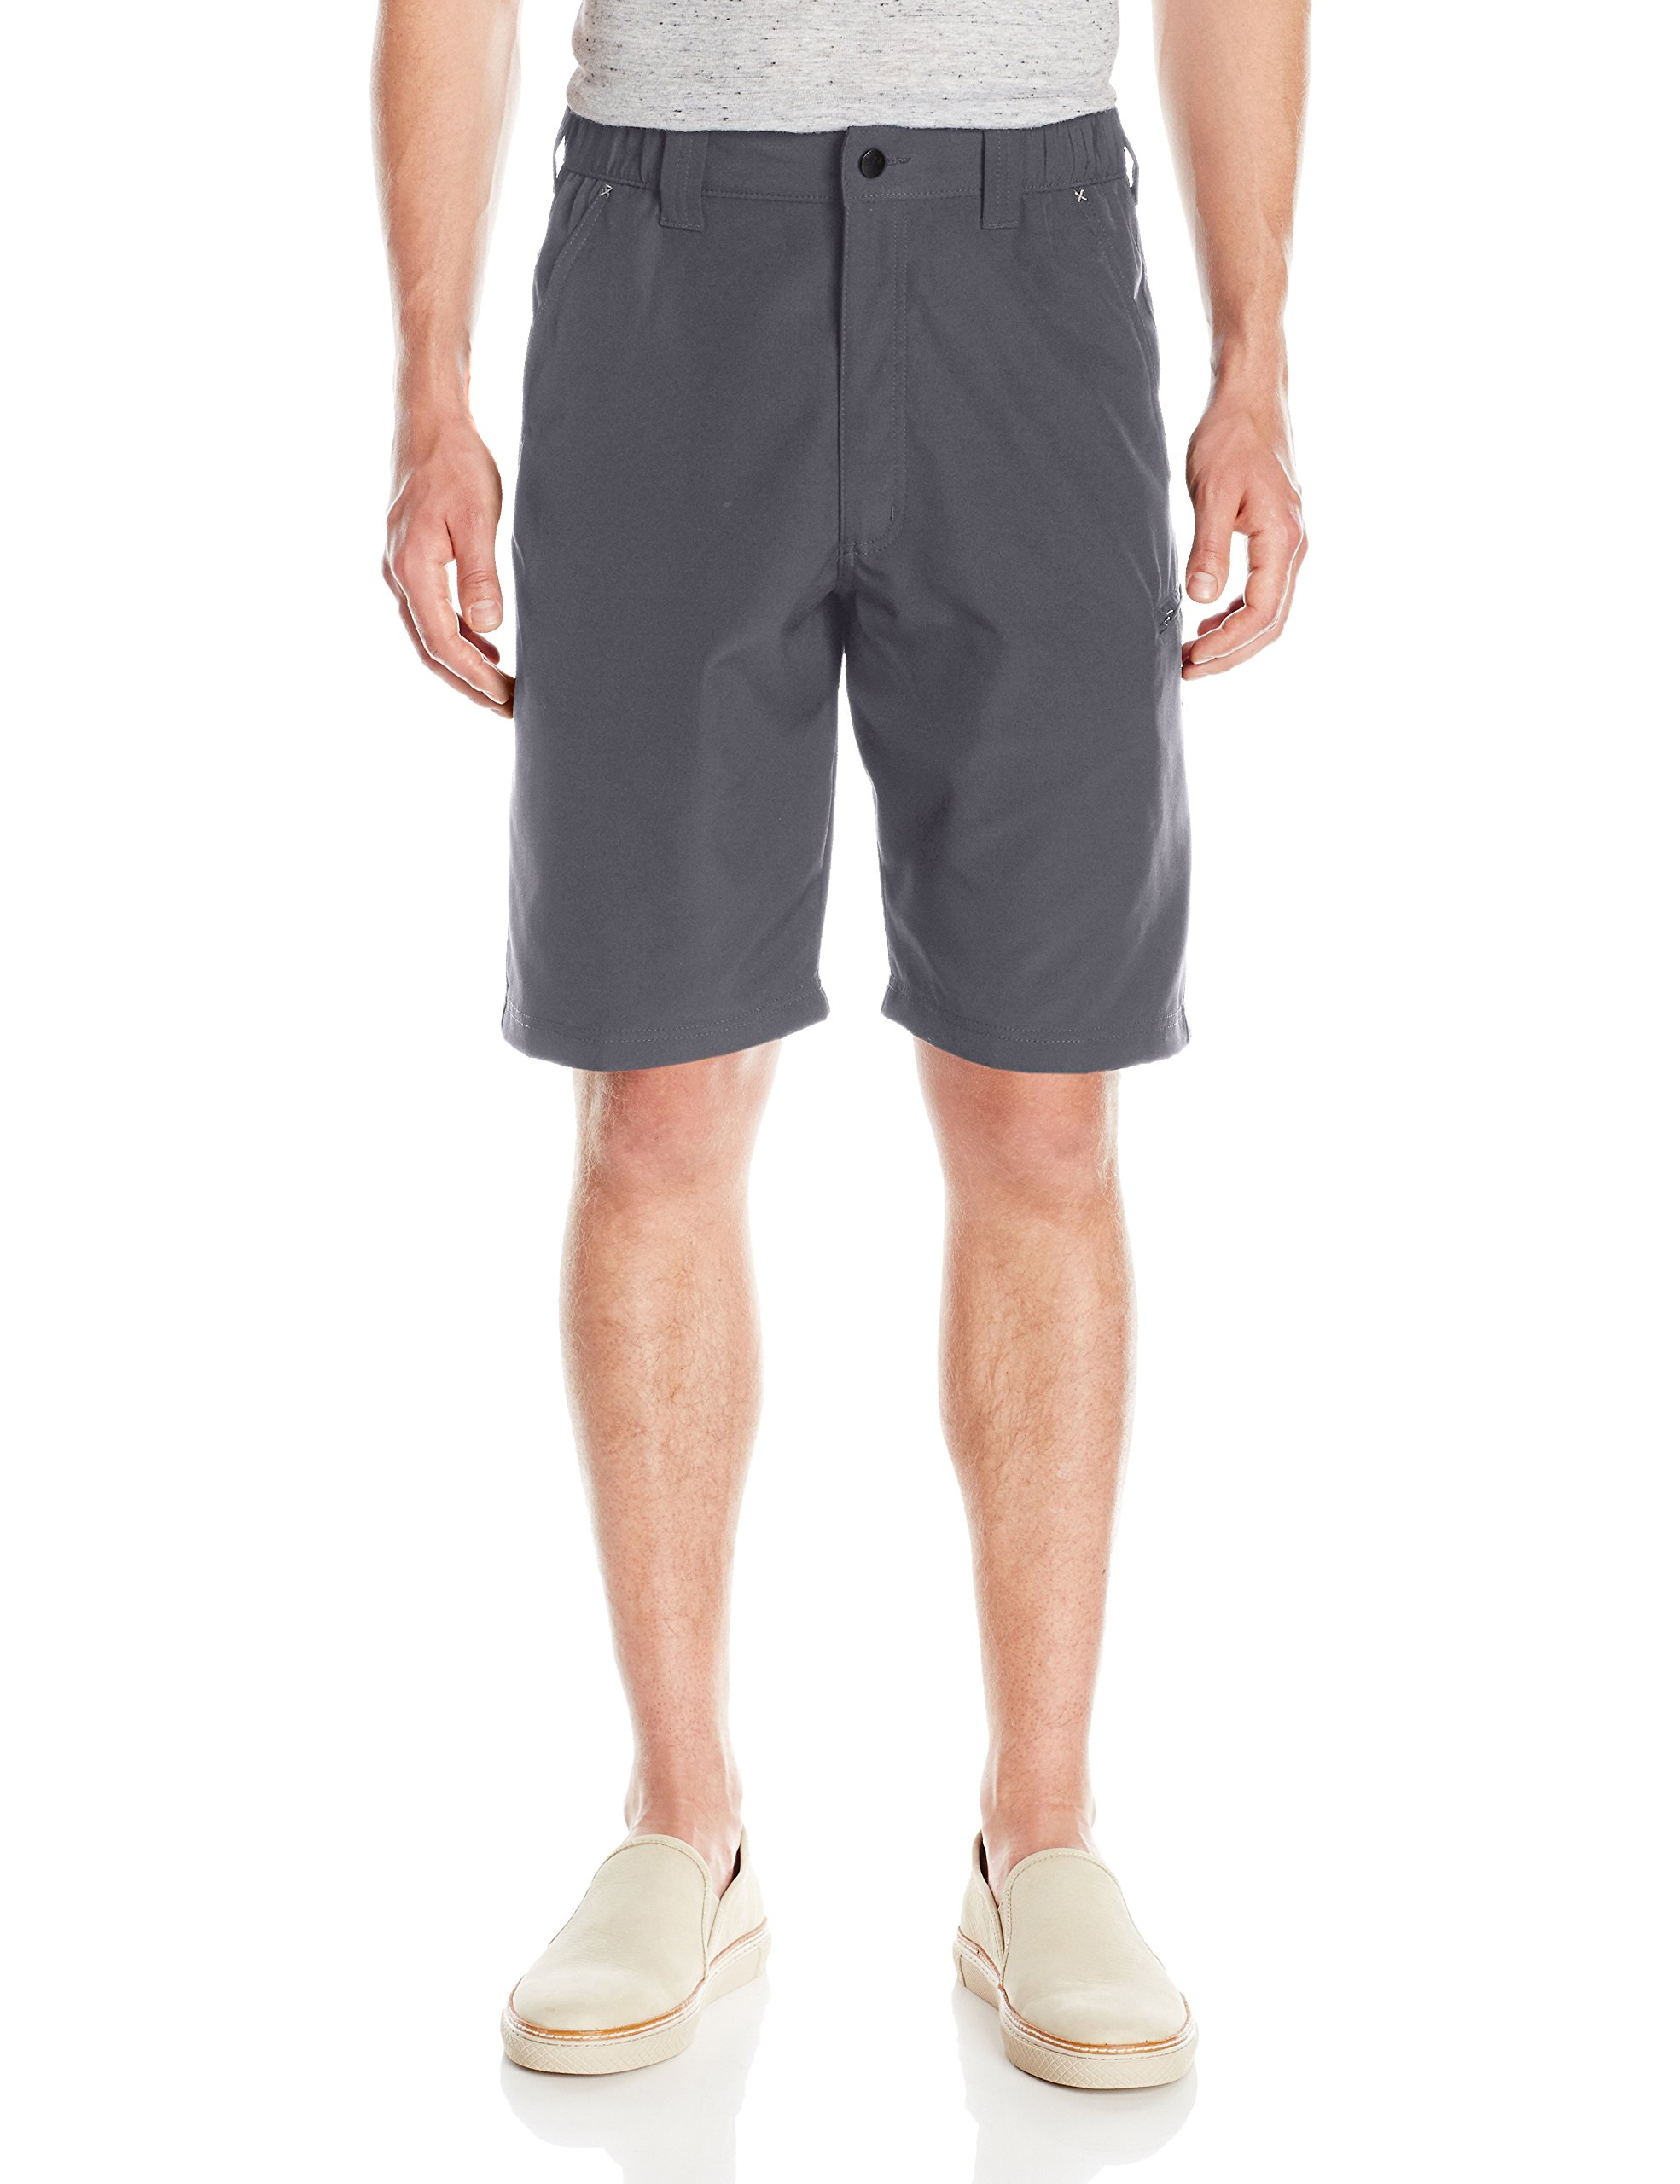 Wrangler Men's Authentics Performance Side Elastic Utility Short, Carbonite, 36